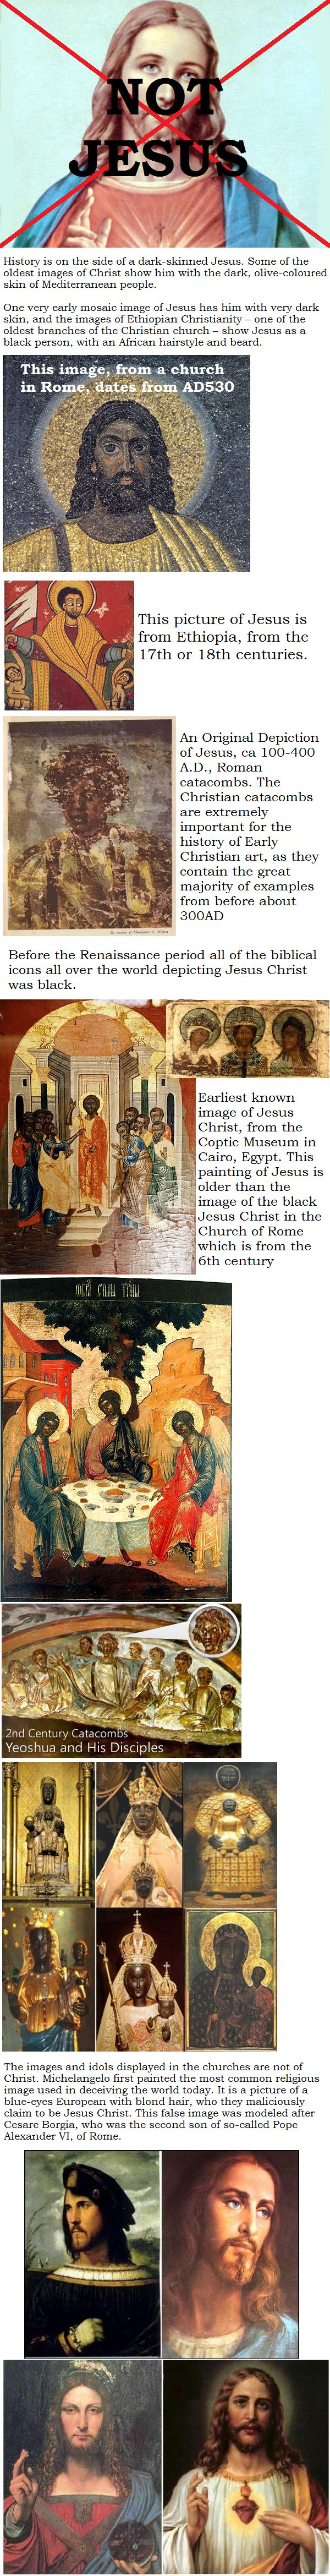 History is on the side of a dark-skinned Jesus. Some of the oldest images of Christ show him with the dark, olive-coloured skin of Mediterranean people. One very early mosaic image of Jesus has him with very dark skin, and the images of Ethiopian Christianity – one of the oldest branches of the Christian church – show Jesus as a black person, with an African hairstyle and beard. http://www.rejesus.co.uk/site/module/faces_of_jesus/P2/